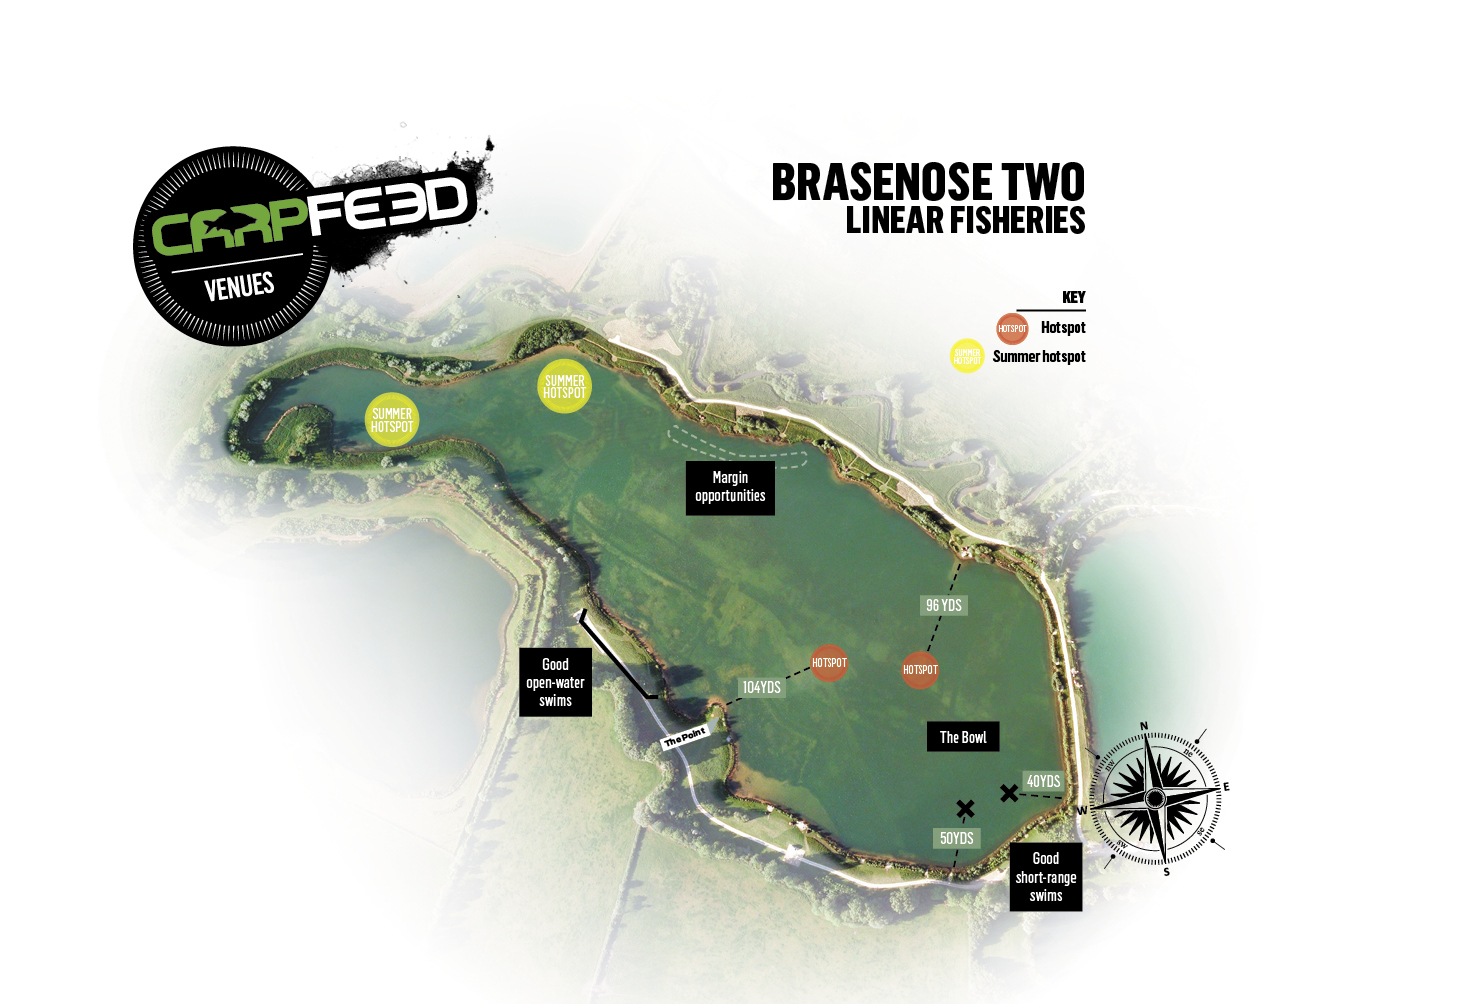 Tom fished the main bowl of the lake. CLICK MAP FOR OUR FULL VENUE GUIDE